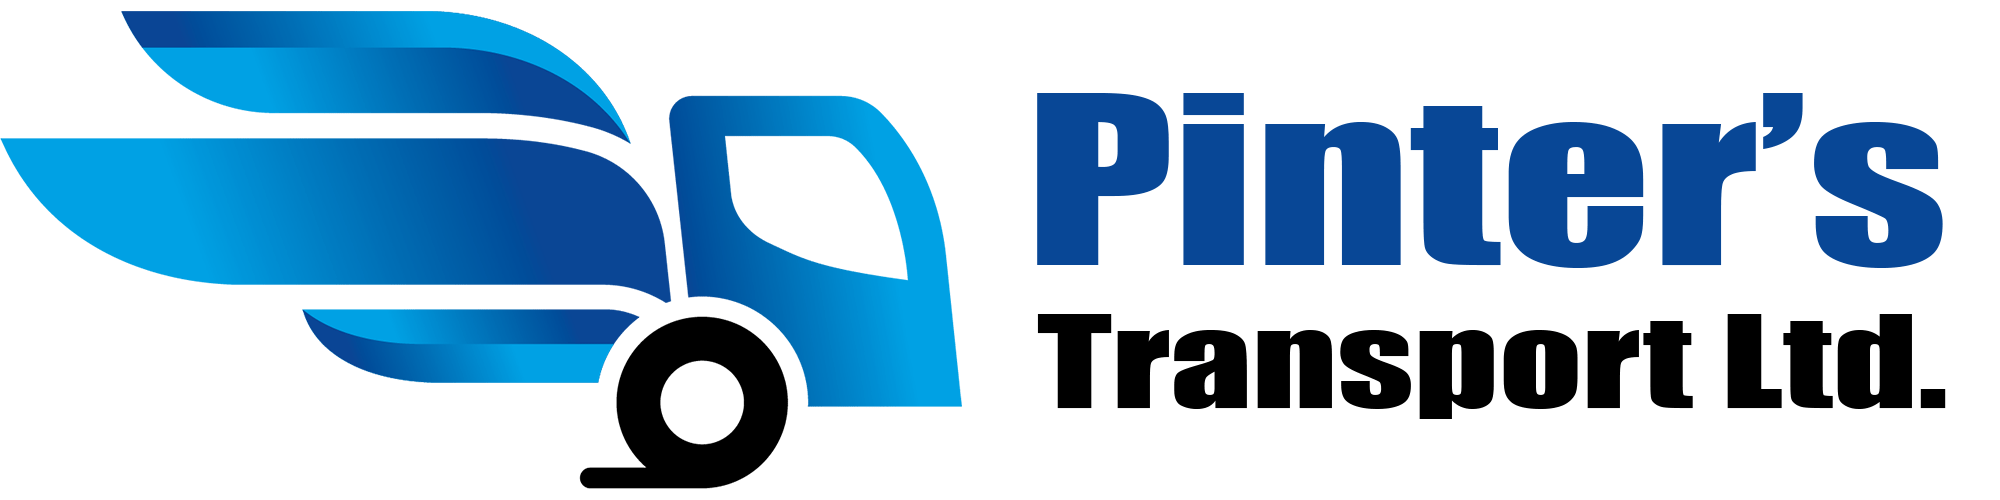 PINTER'S RECOVERY & TRANSPORT SERVICES LTD.